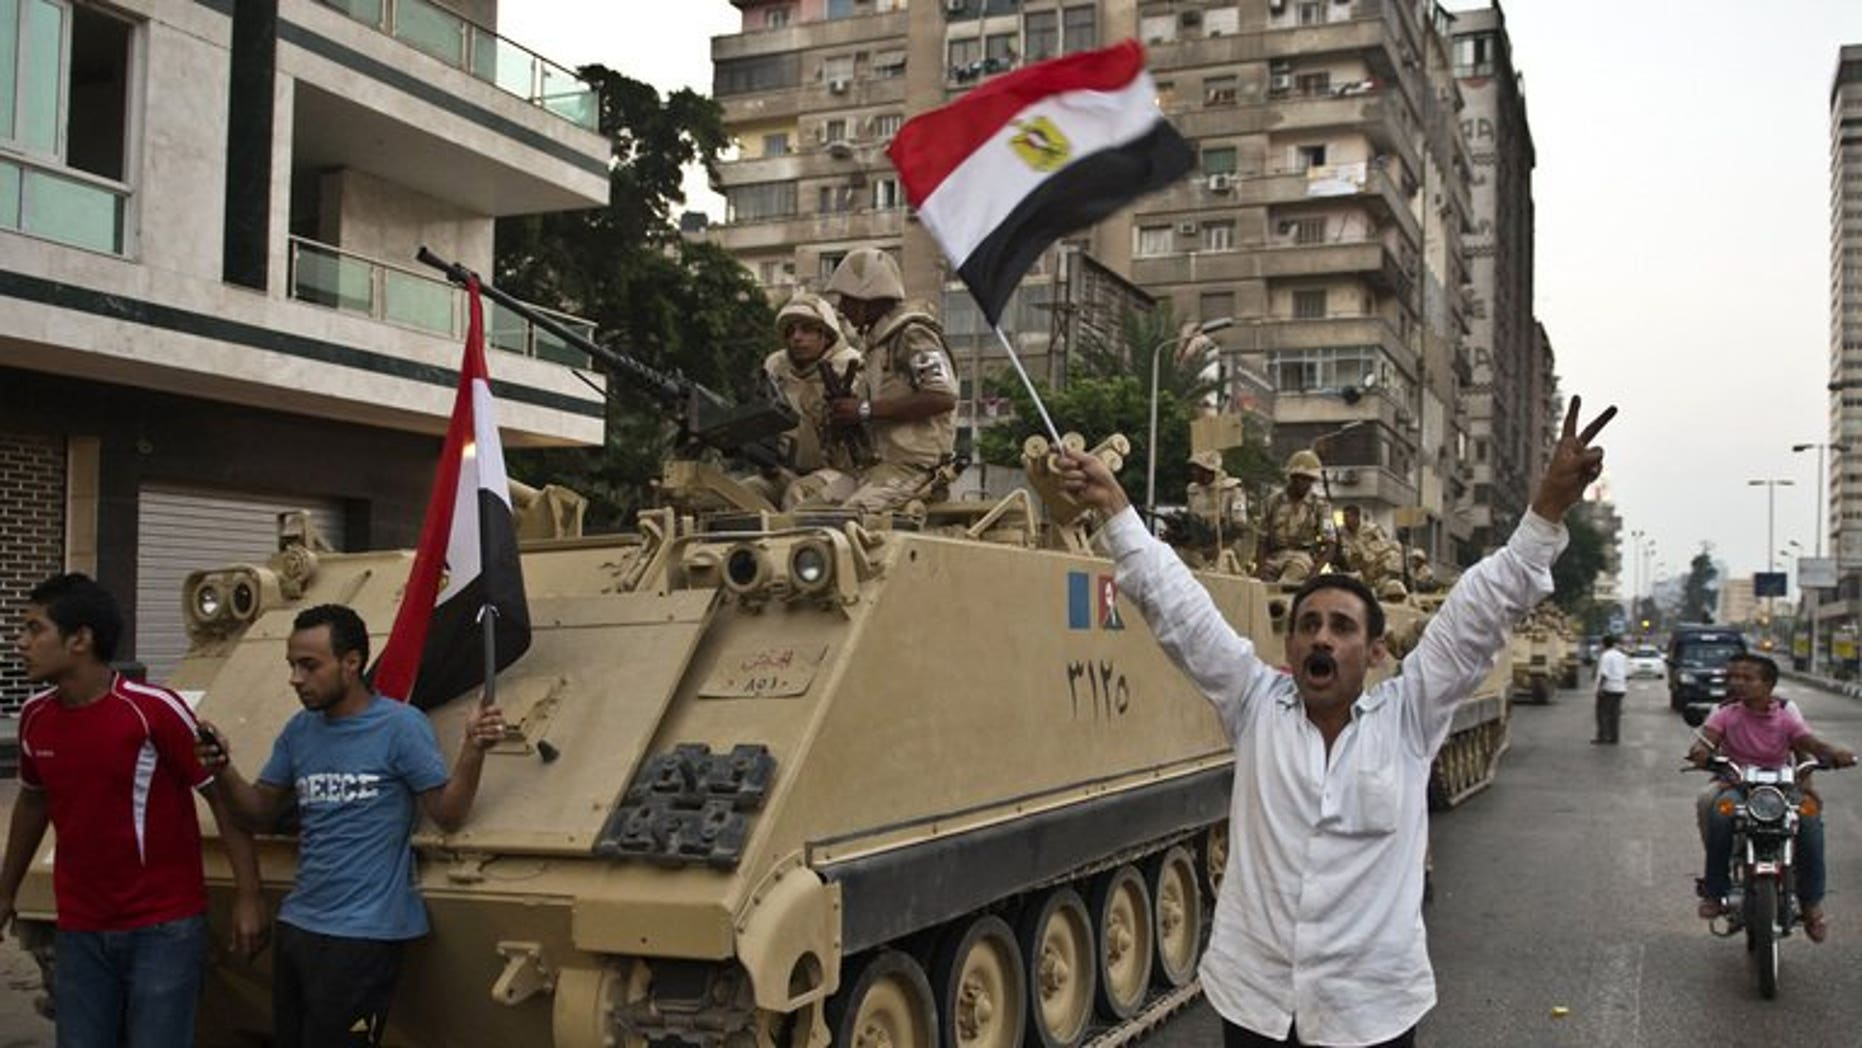 """Demonstrators salute army tanks upon their deployment on a street leading to Cairo University on July 3. Amnesty International said on Wednesday it had evidence pointing to the """"disproportionate"""" use of lethal force by Egyptian security forces, and called for them to be reined in to avoid """"disaster""""."""